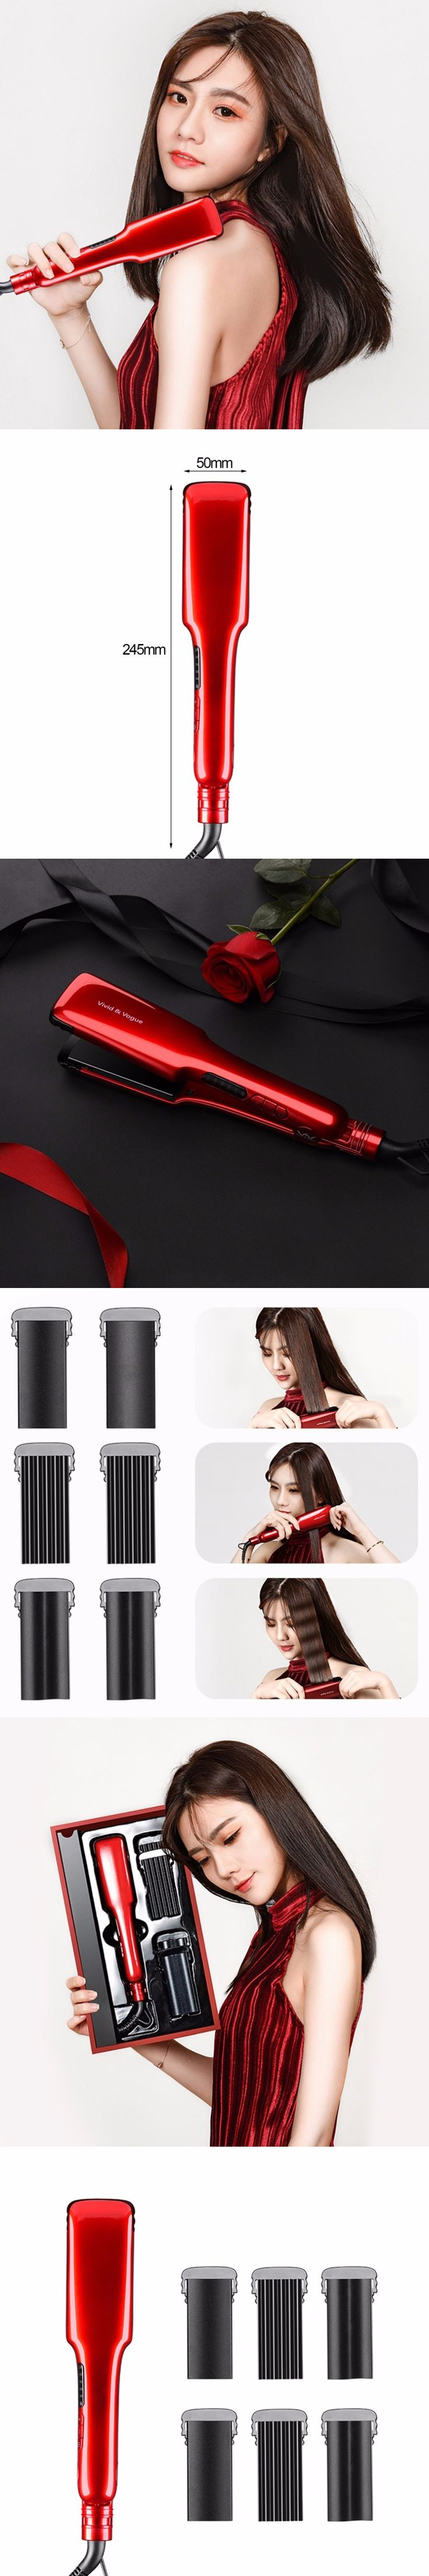 Professional Hair Straightener Ceramic Hair Iron Electric Hair Straightening Tools Personal Salon Hair Styling Tools Hot New